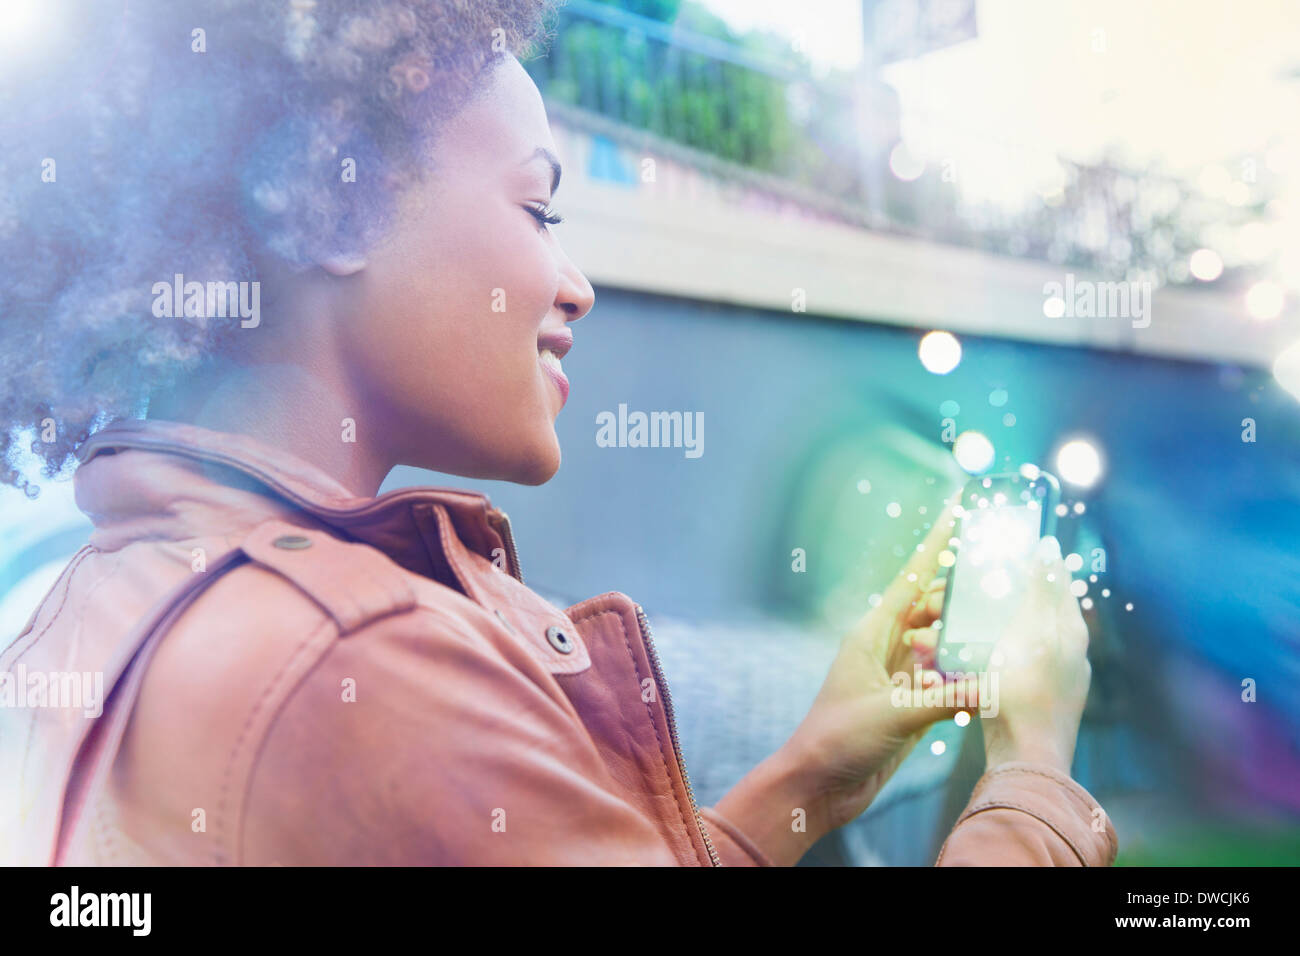 Young woman looking at smartphone with glowing lights coming out - Stock Image